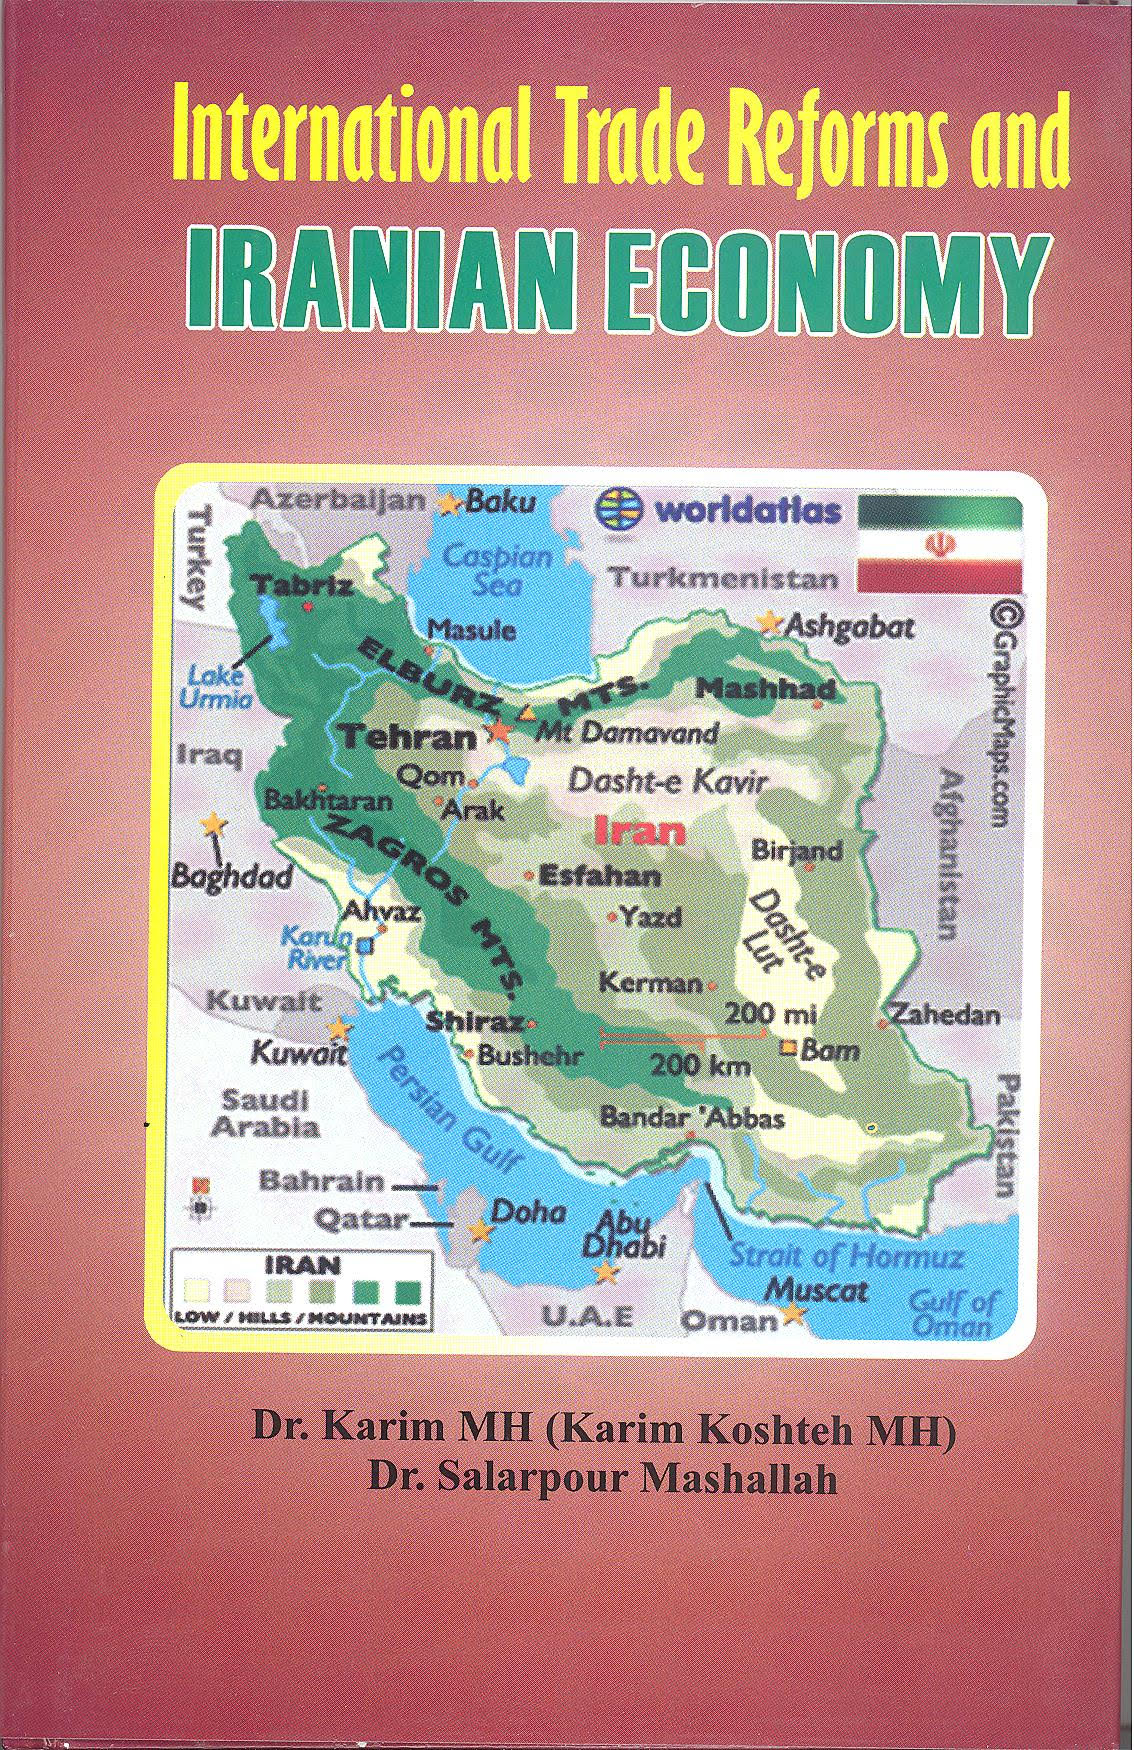 International Trade Reforms and Iranian Economy